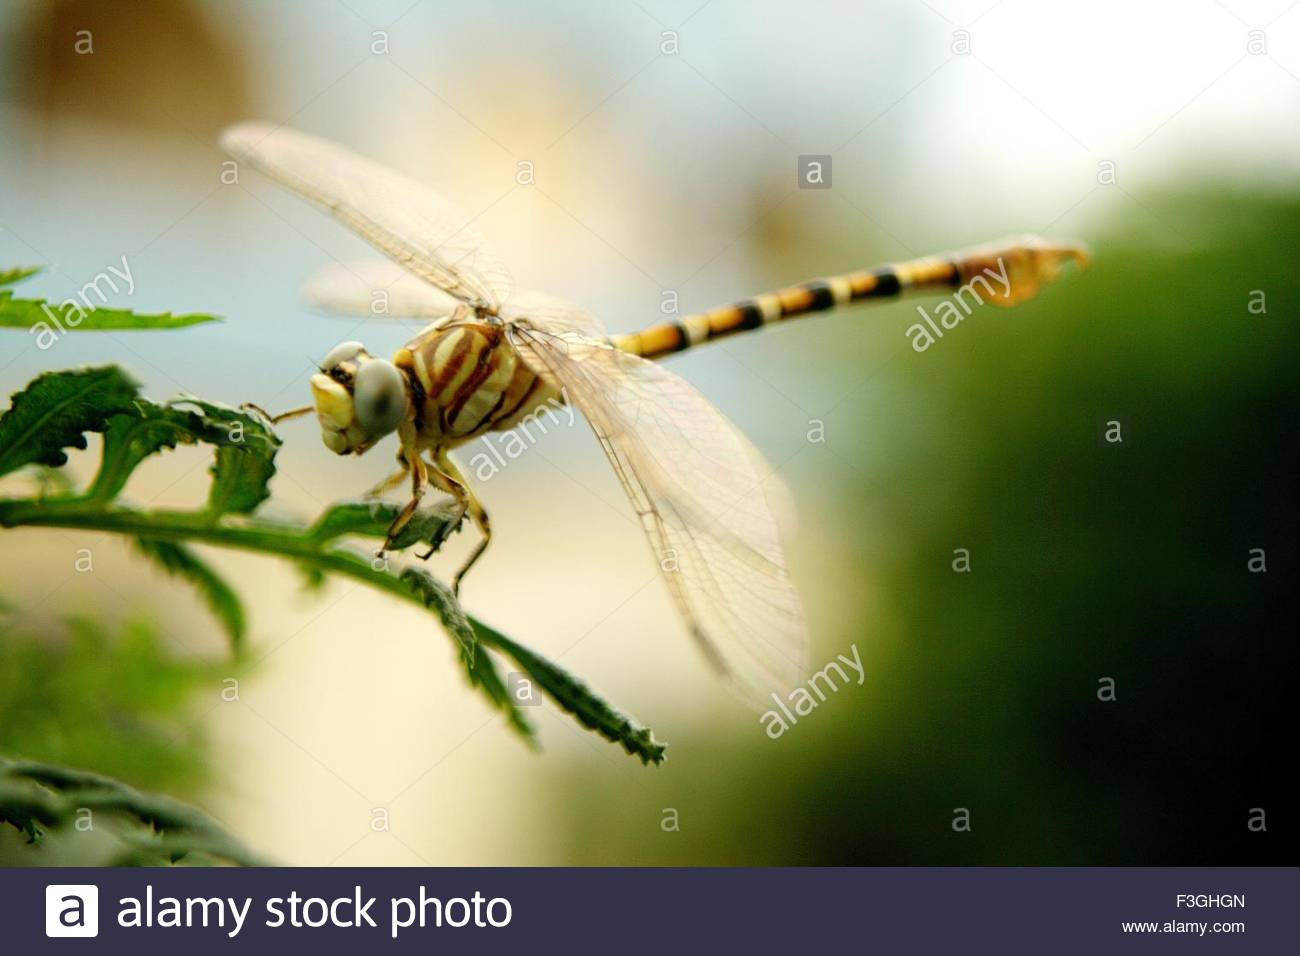 Insect ; Dragon fly ; India - Stock Image